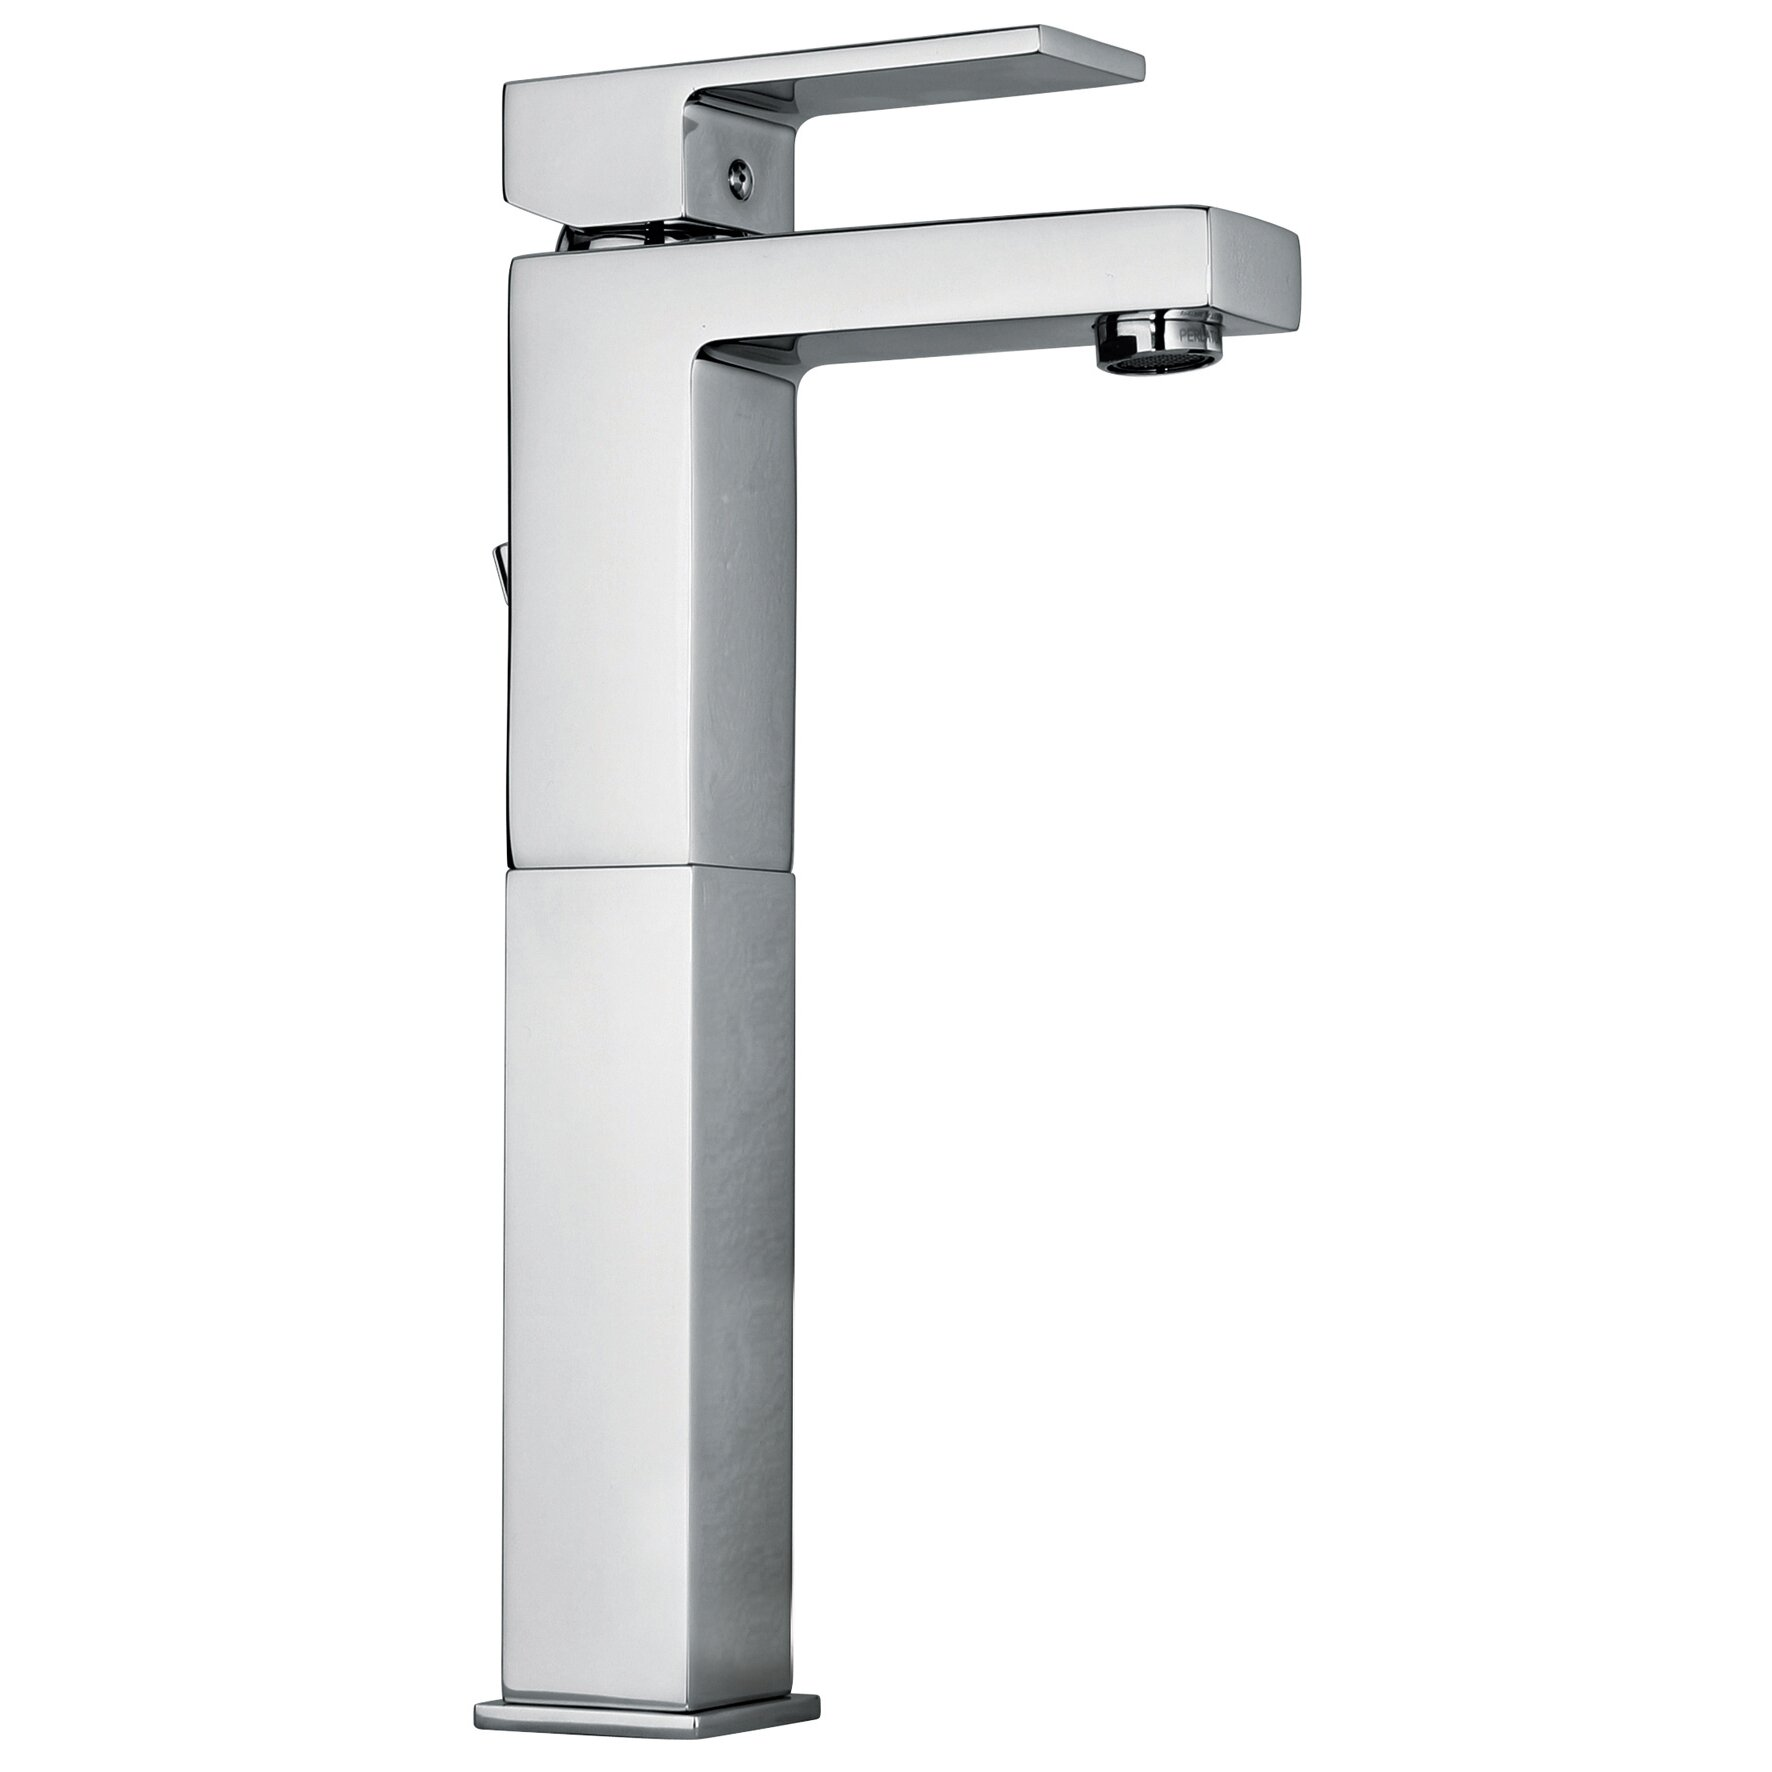 Single Lever Bathroom Faucets: Jewel Faucets J12 Bath Series Single Lever Handle Tall